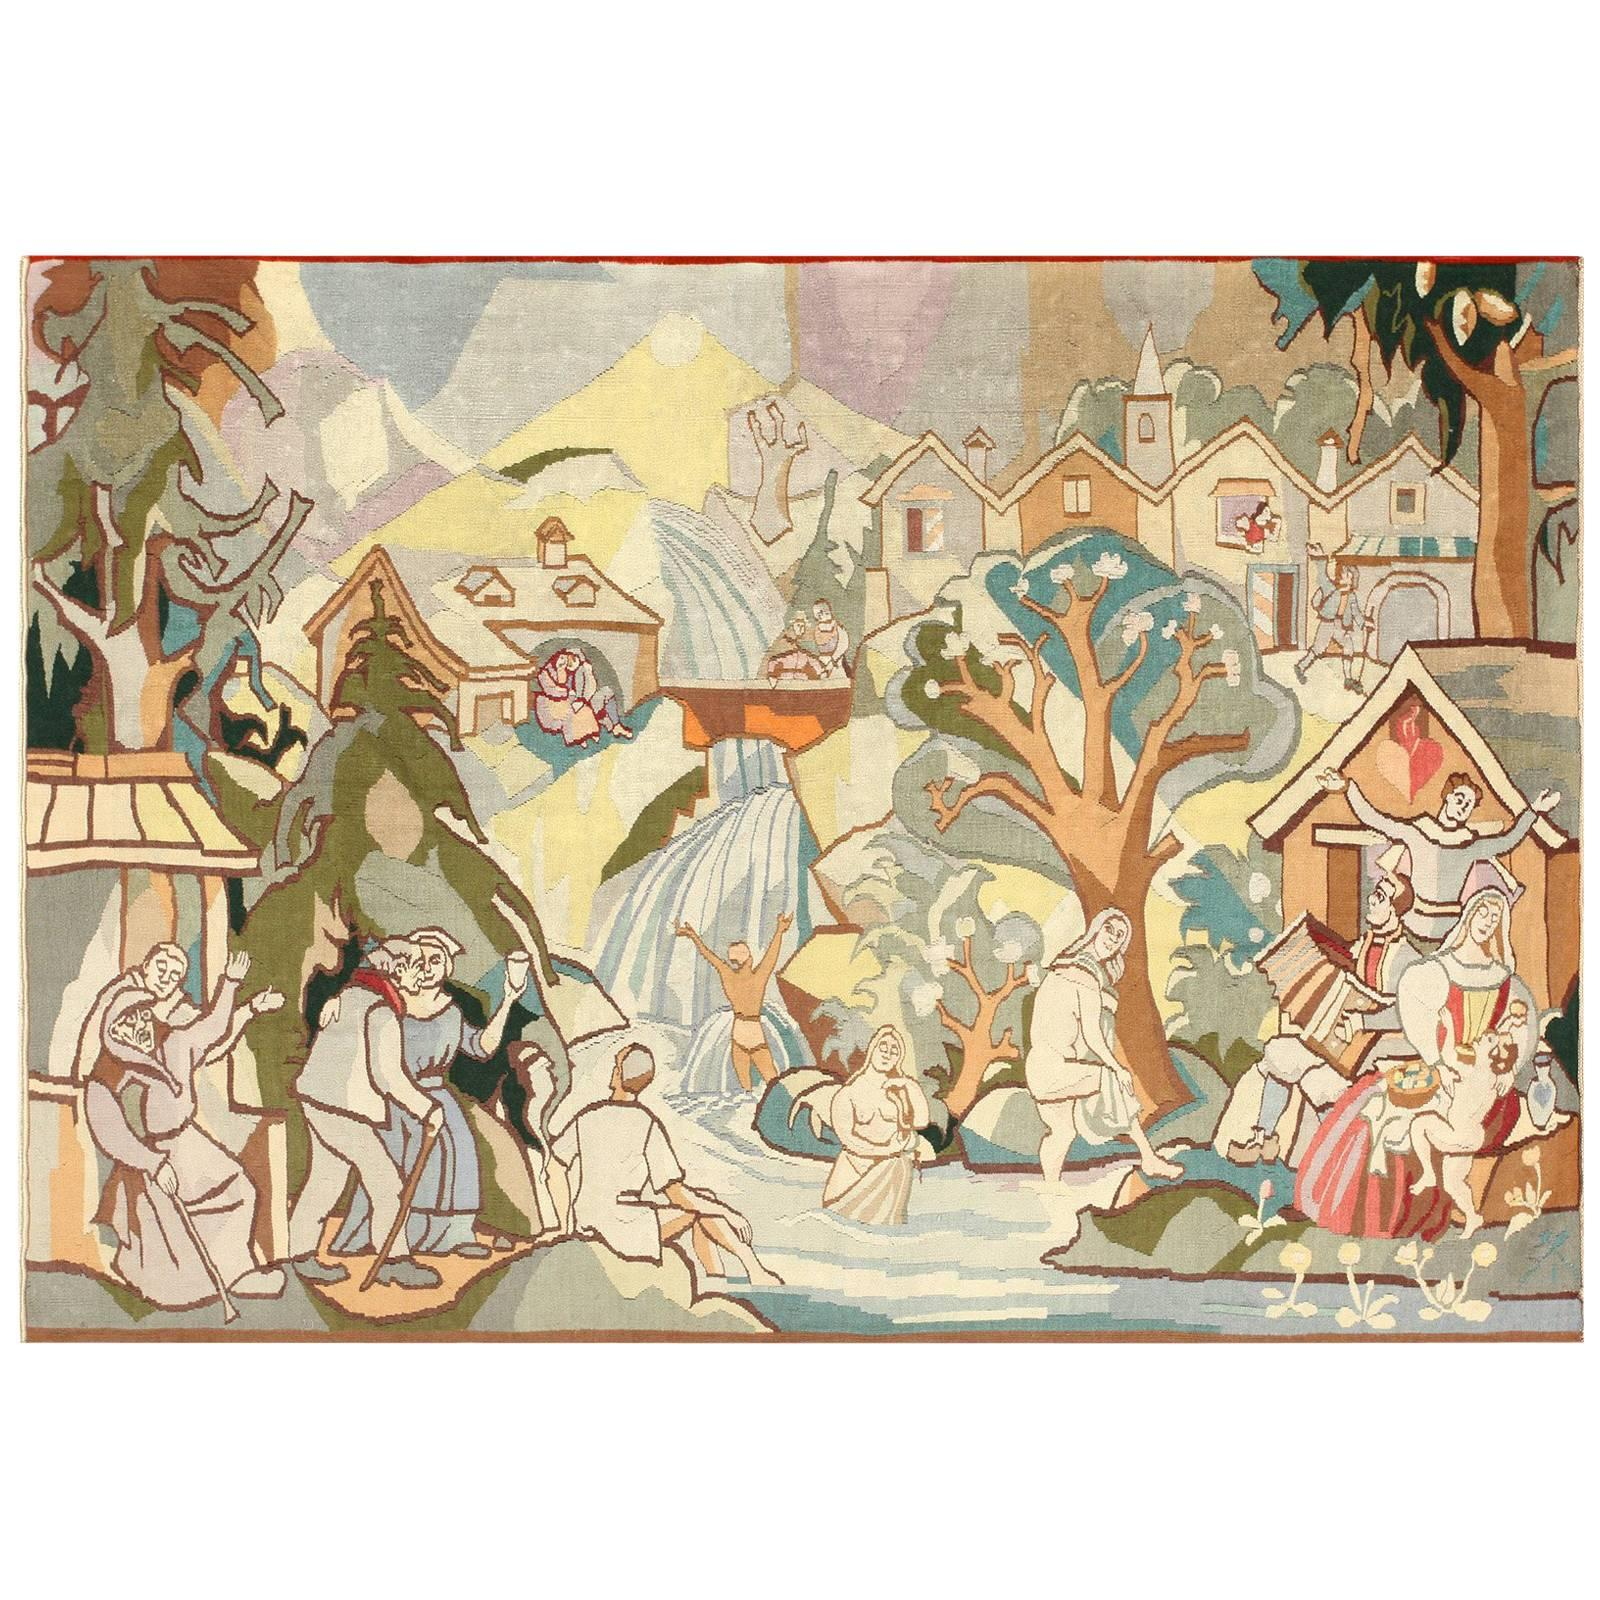 Vintage Swedish Tapestry. Size: 8 ft 3 in x 5 ft 10 in (2.51 m x 1.78 m)